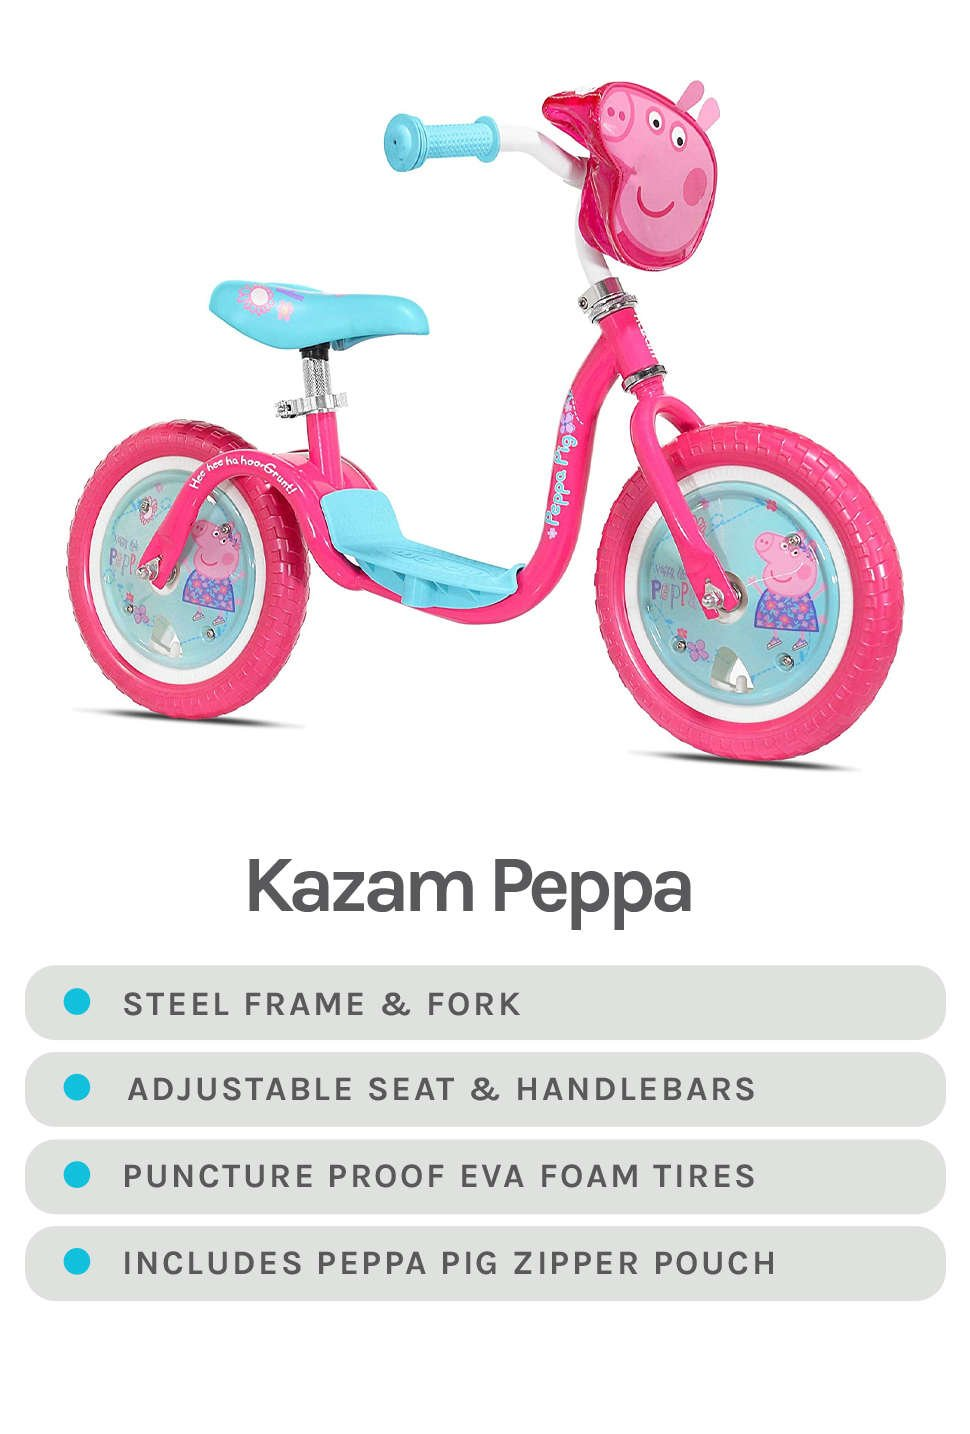 Pink & Blue Kazam Peppa Featured - Specs - Steel Frame & Fork, Adjustable Seat & Handlebars, Puncture Proof EVA Foam Tires, Included Peppa Pig Zipper Pouch